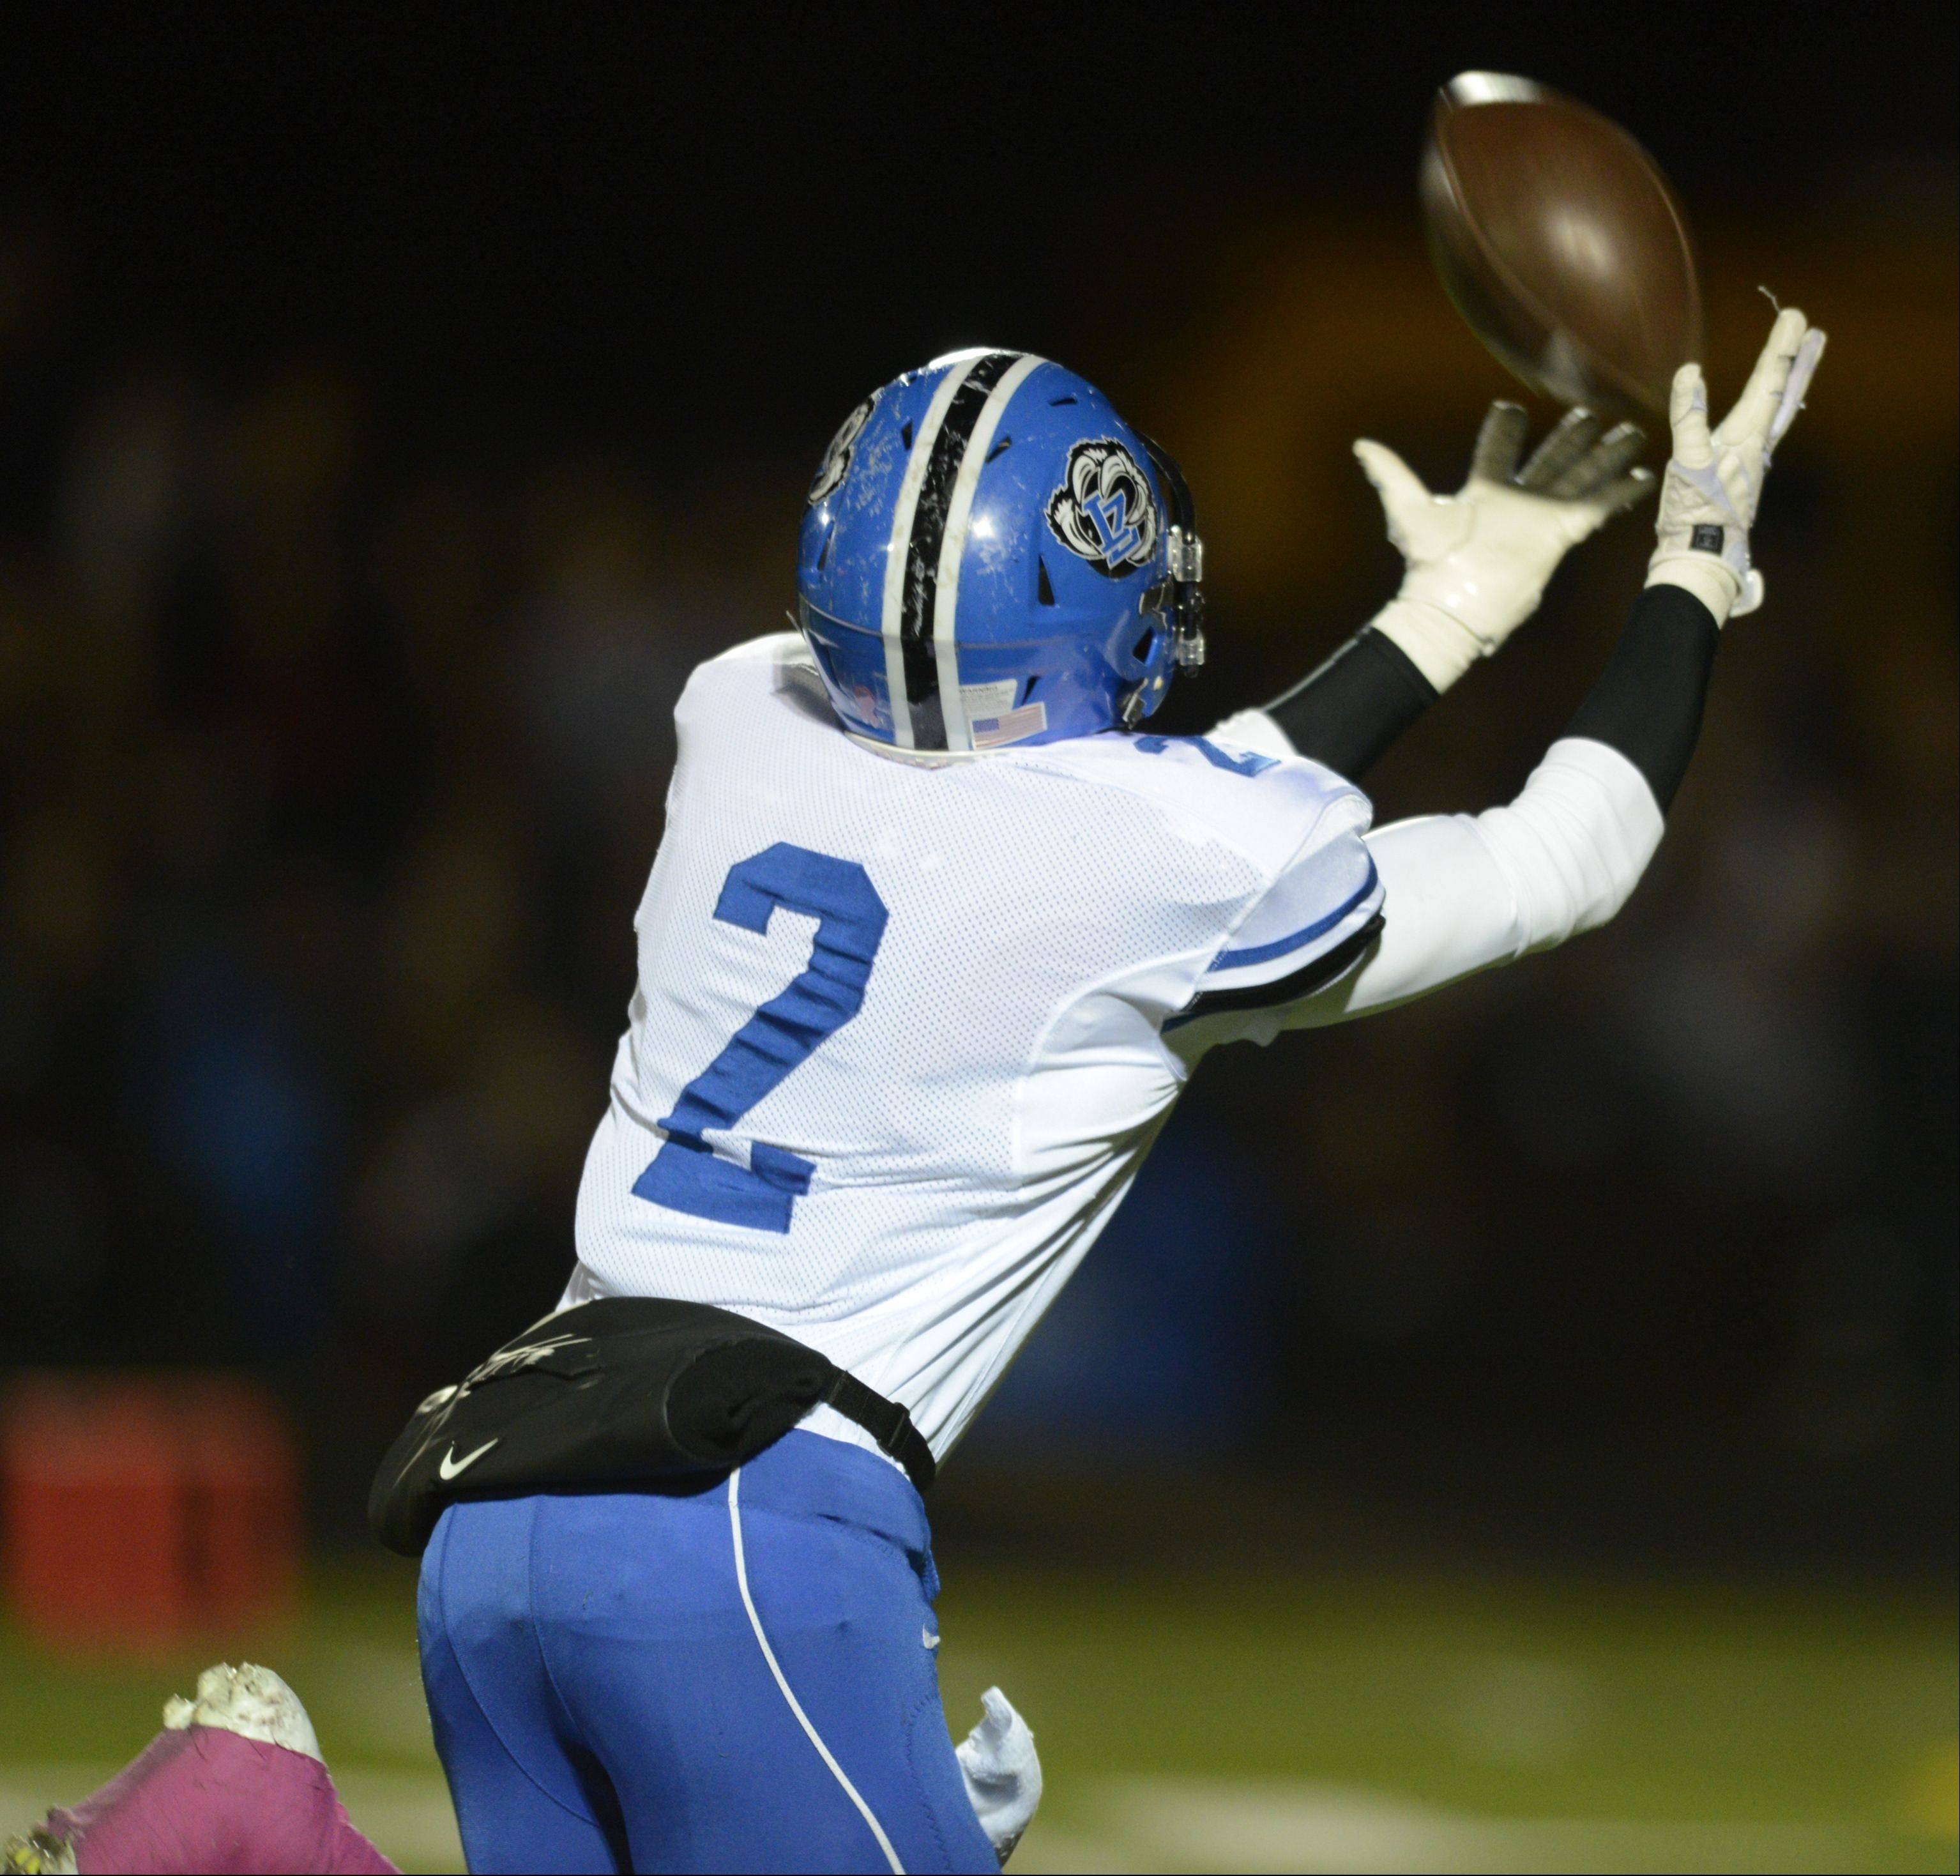 Week -9- Photos from the Lake Zurich at Stevenson football game on Friday, Oct. 25 in Lincolnshire.